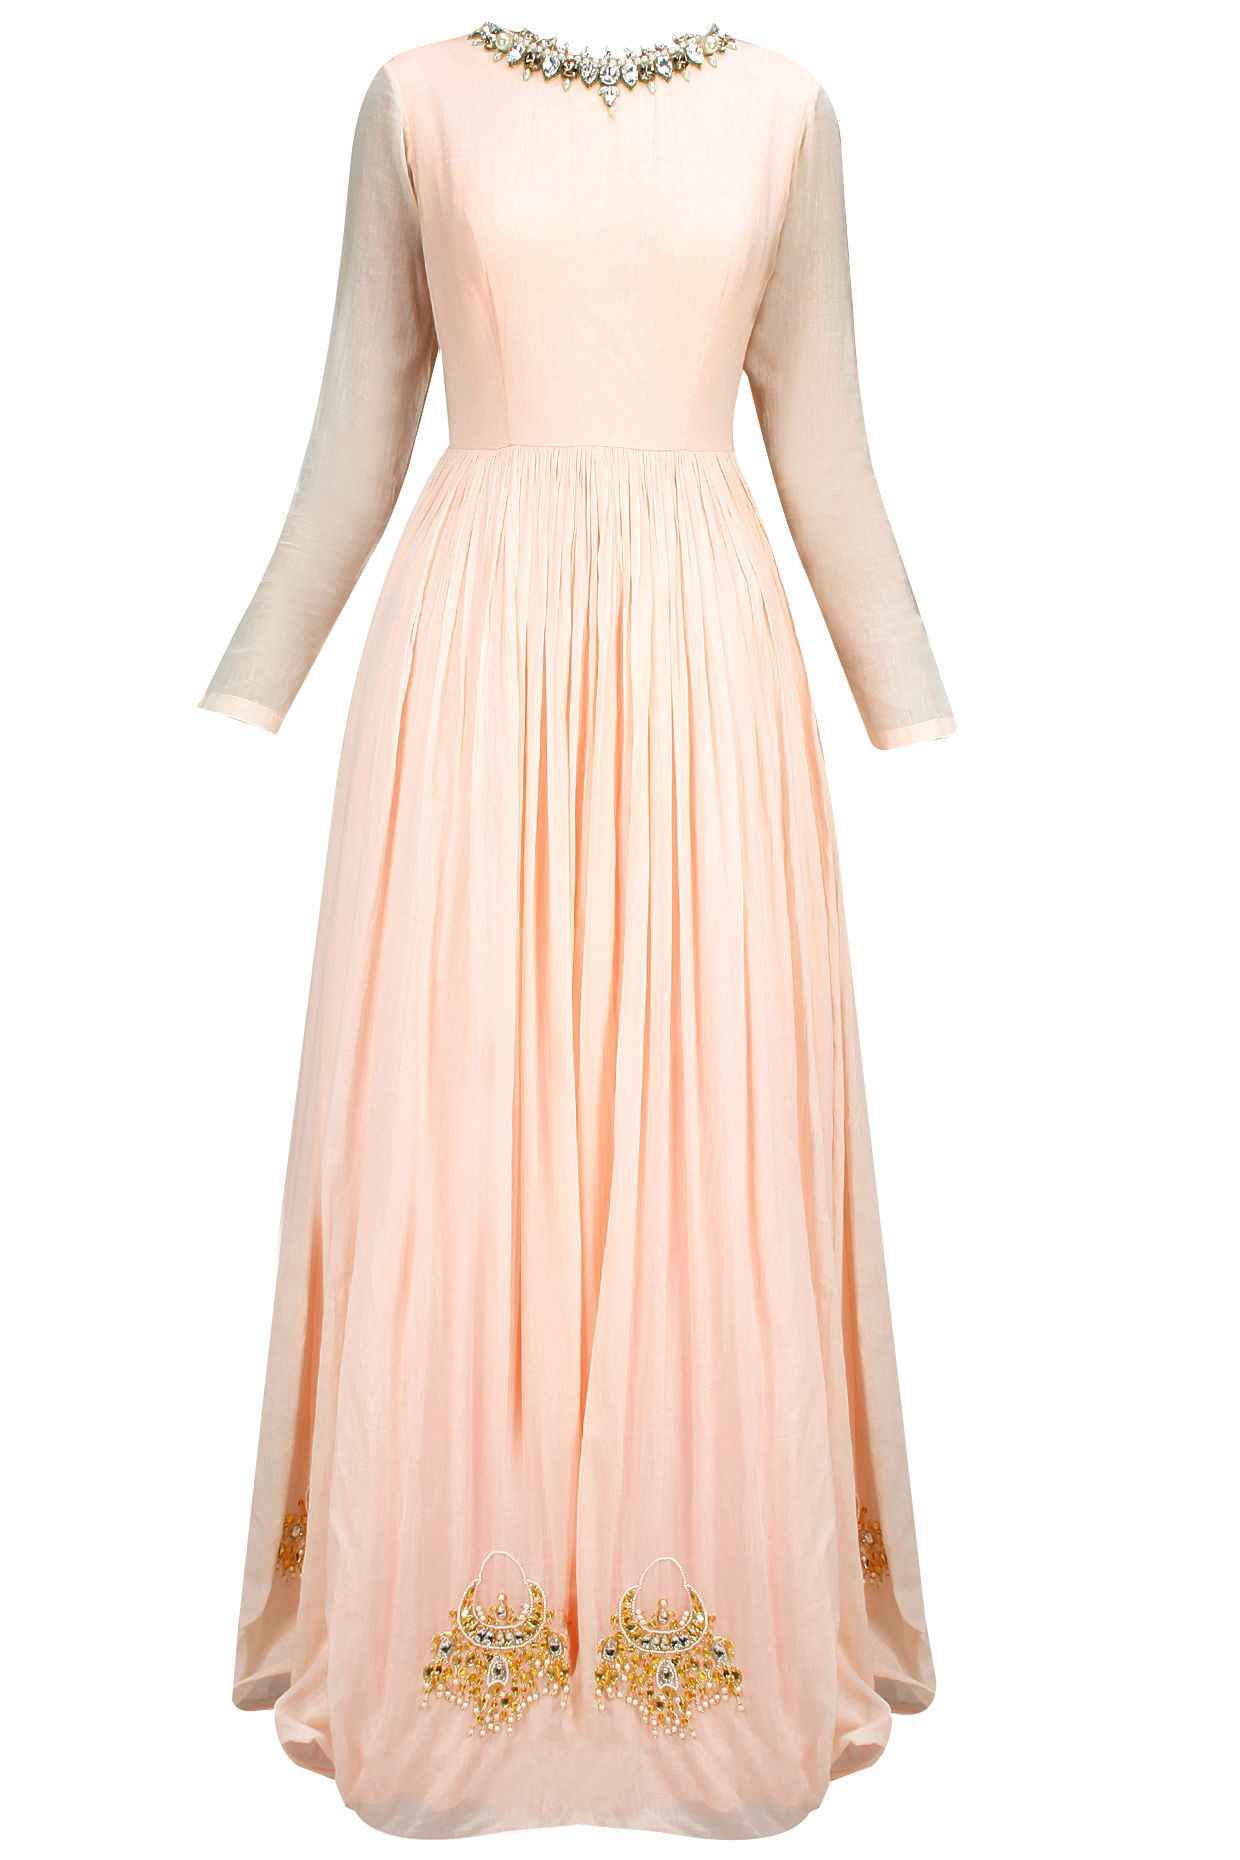 Peach and mint chandbali embroidered anarkali set available only at